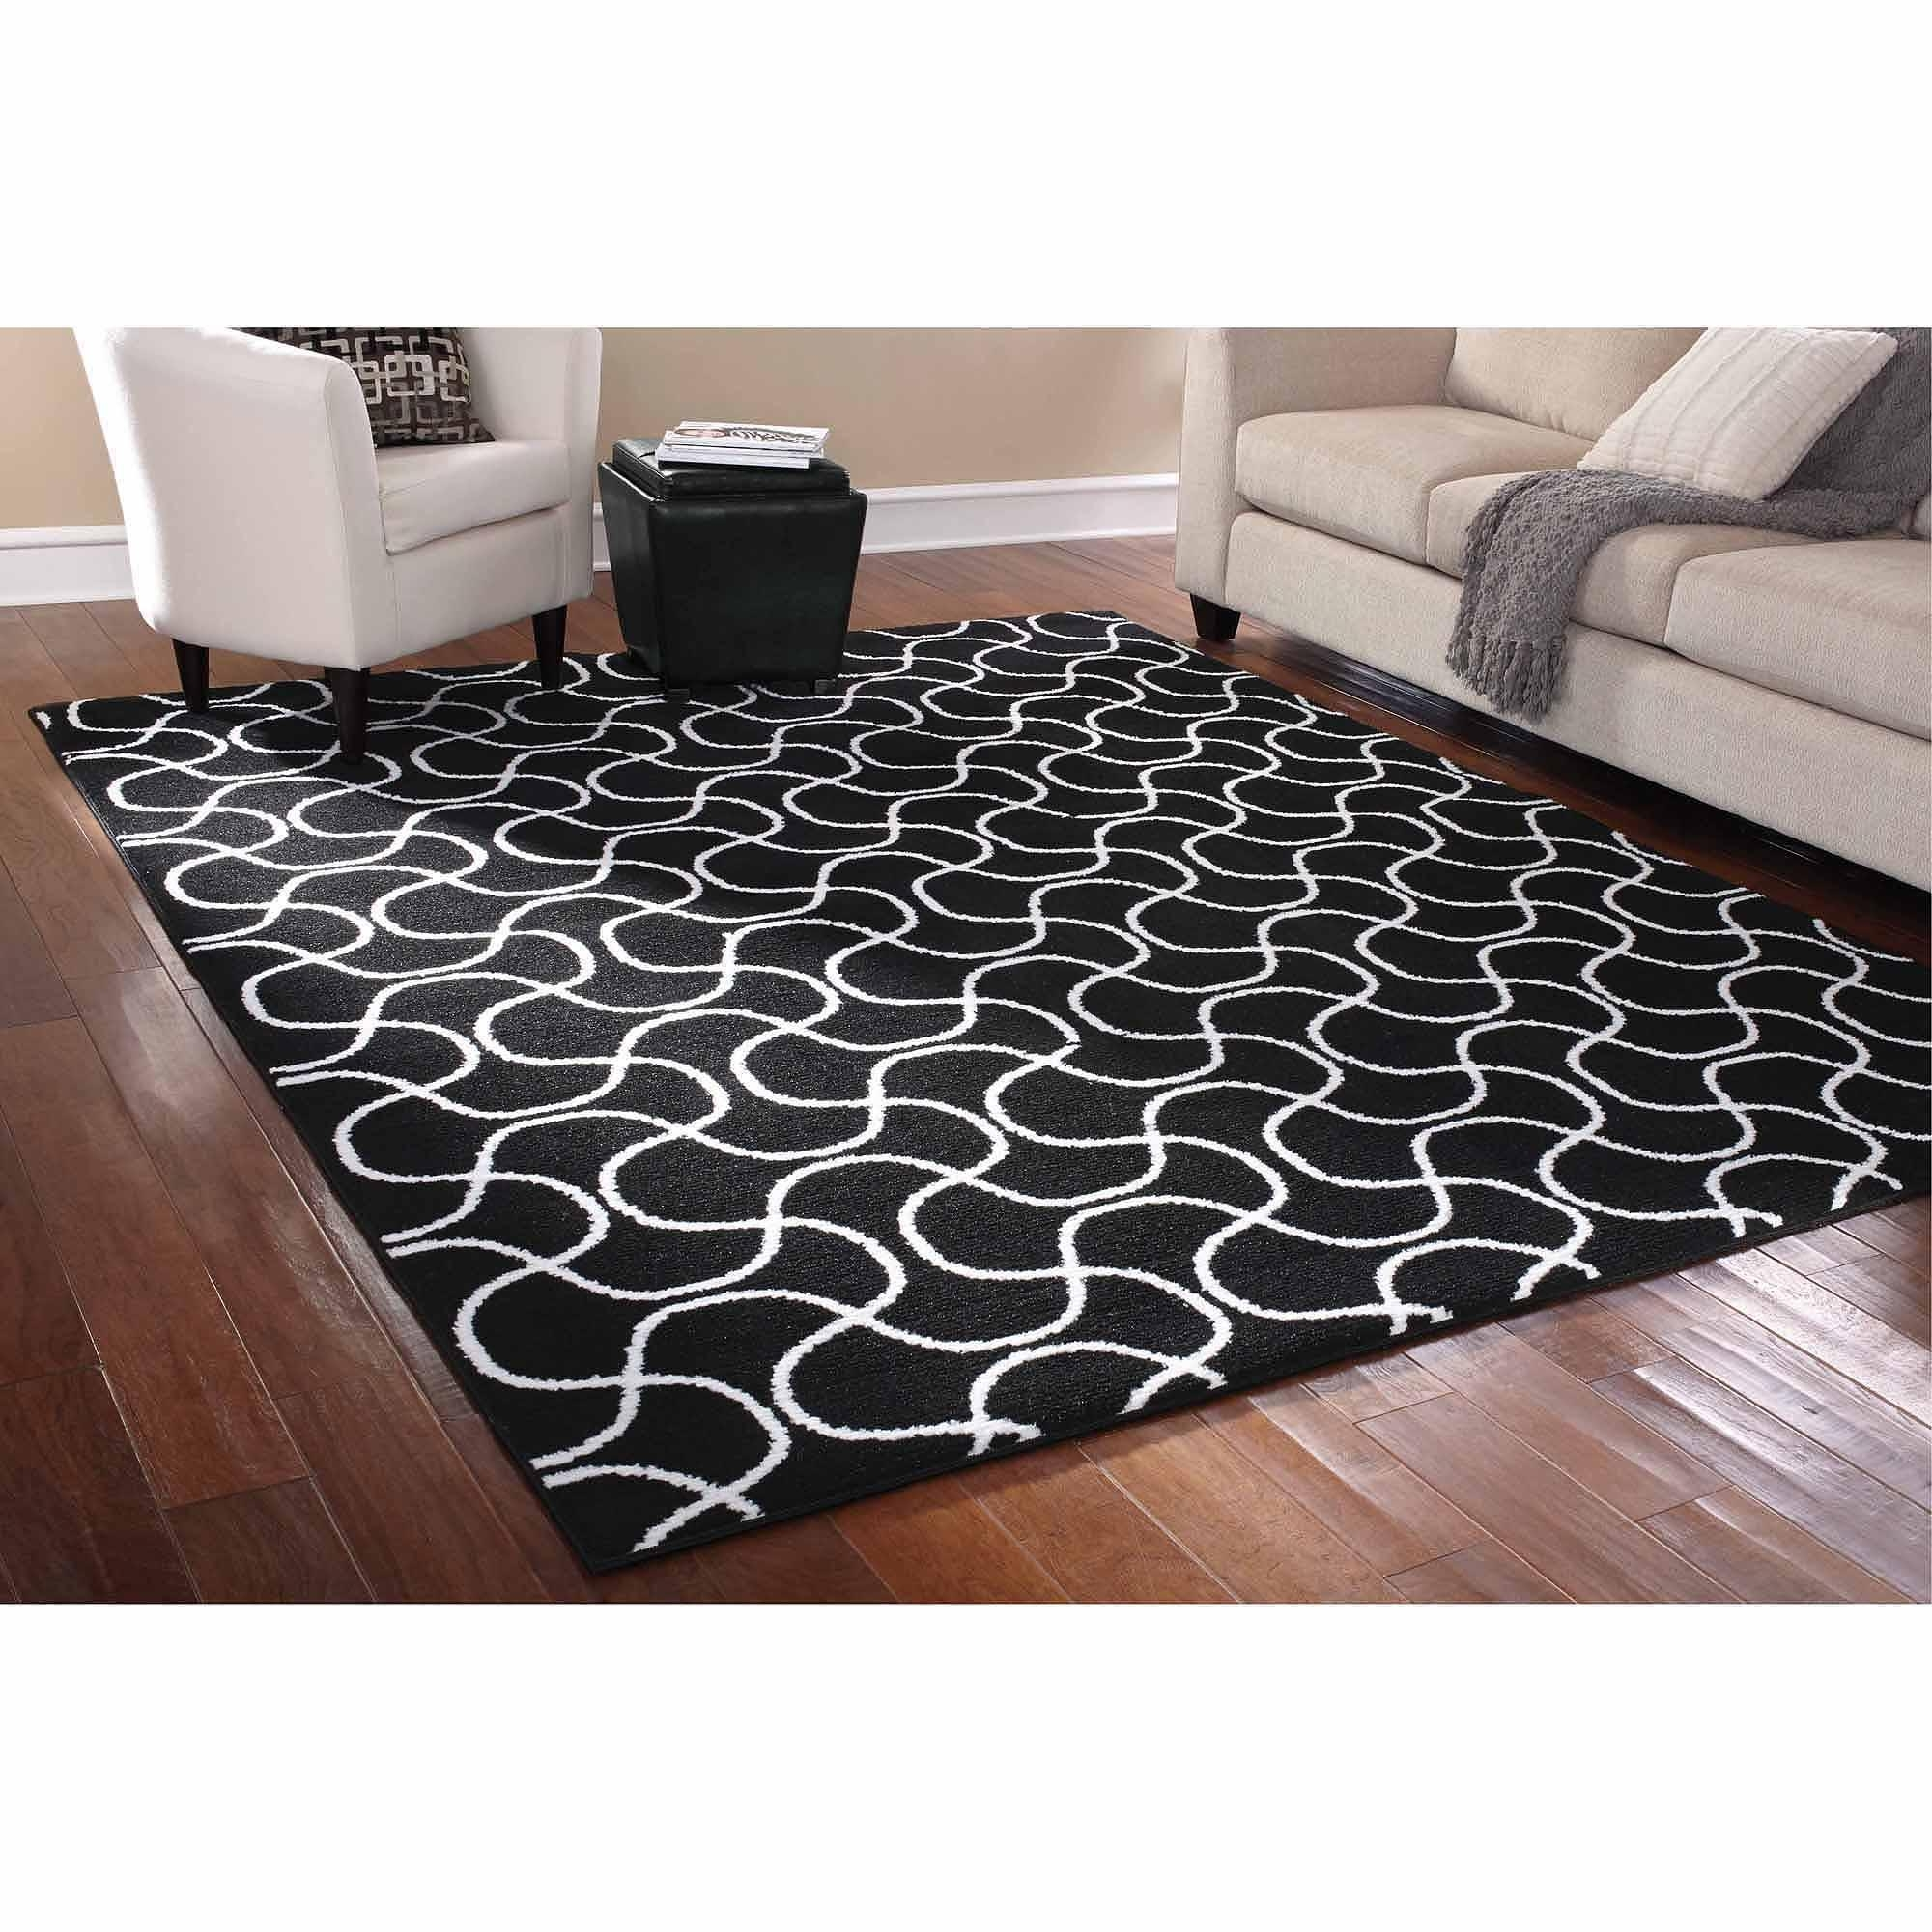 Rugs Appealing Pattern 8×10 Area Rug For Nice Floor Decor Ideas Inside Cheap Silver Rugs (View 6 of 15)